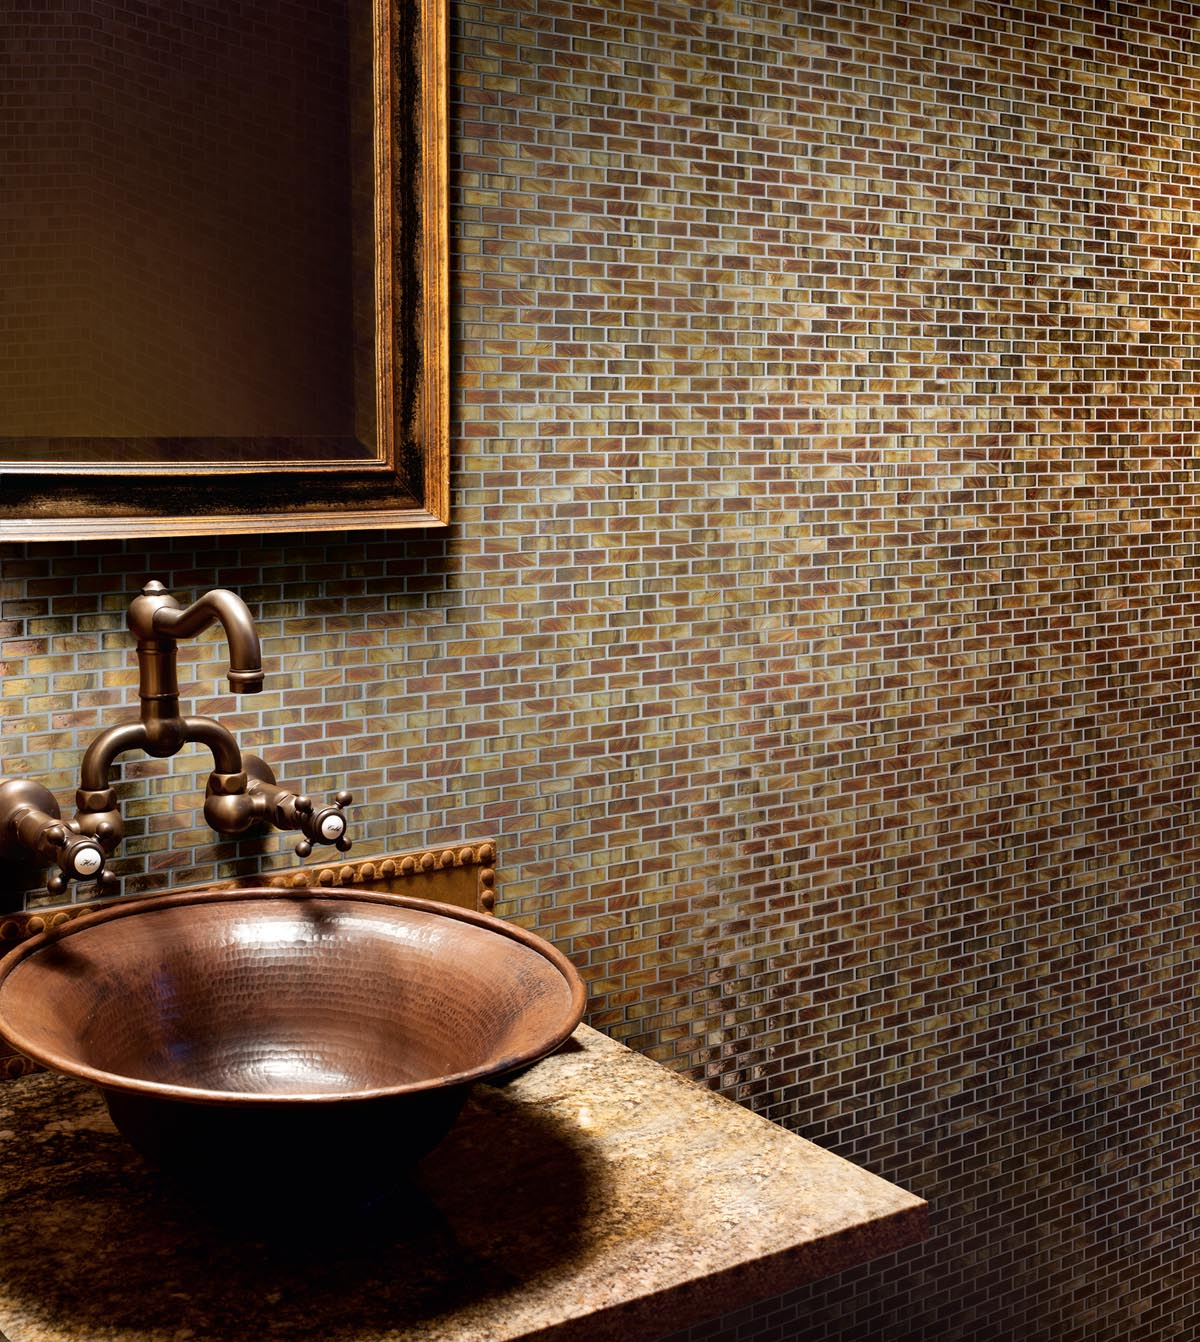 Porcelain Tile, Stone Tile, Glass Tile, Outdoor Tiles and MORE!